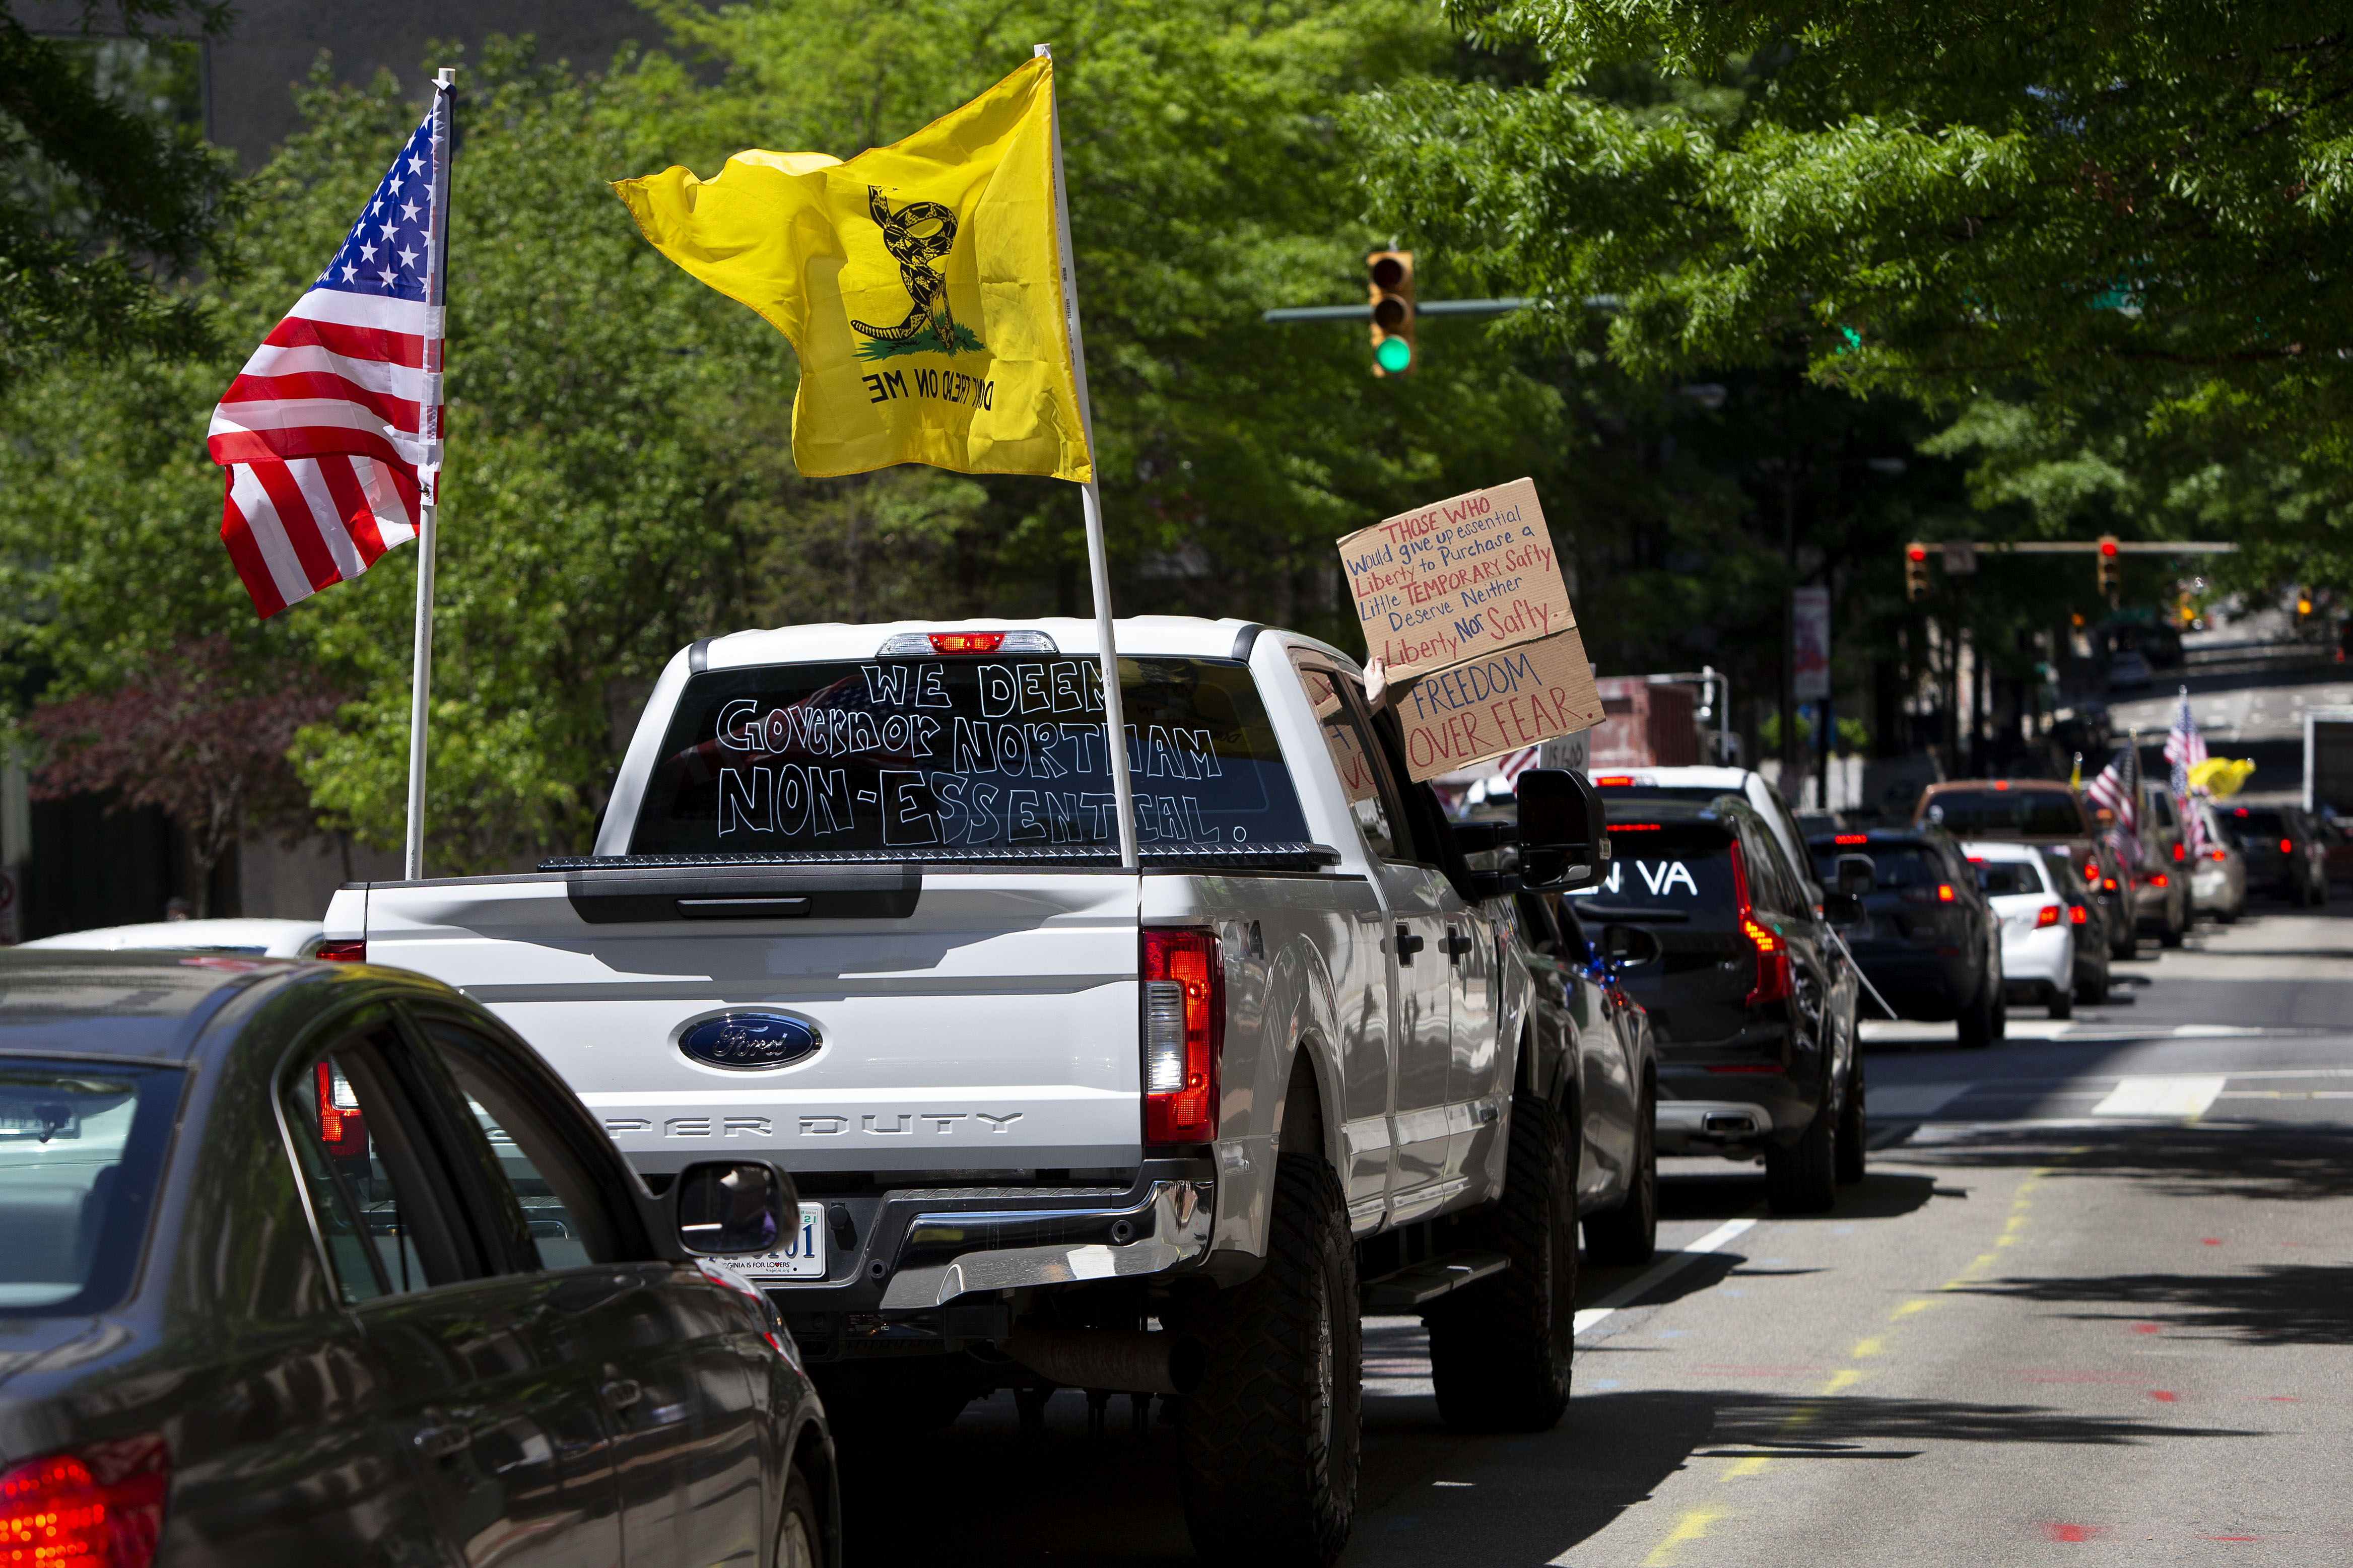 Drivers honk their horns during a reopen Virginia rally around Capitol Square in Richmond on April 22, 2020. (Photo by RYAN M. KELLY/AFP via Getty Images)